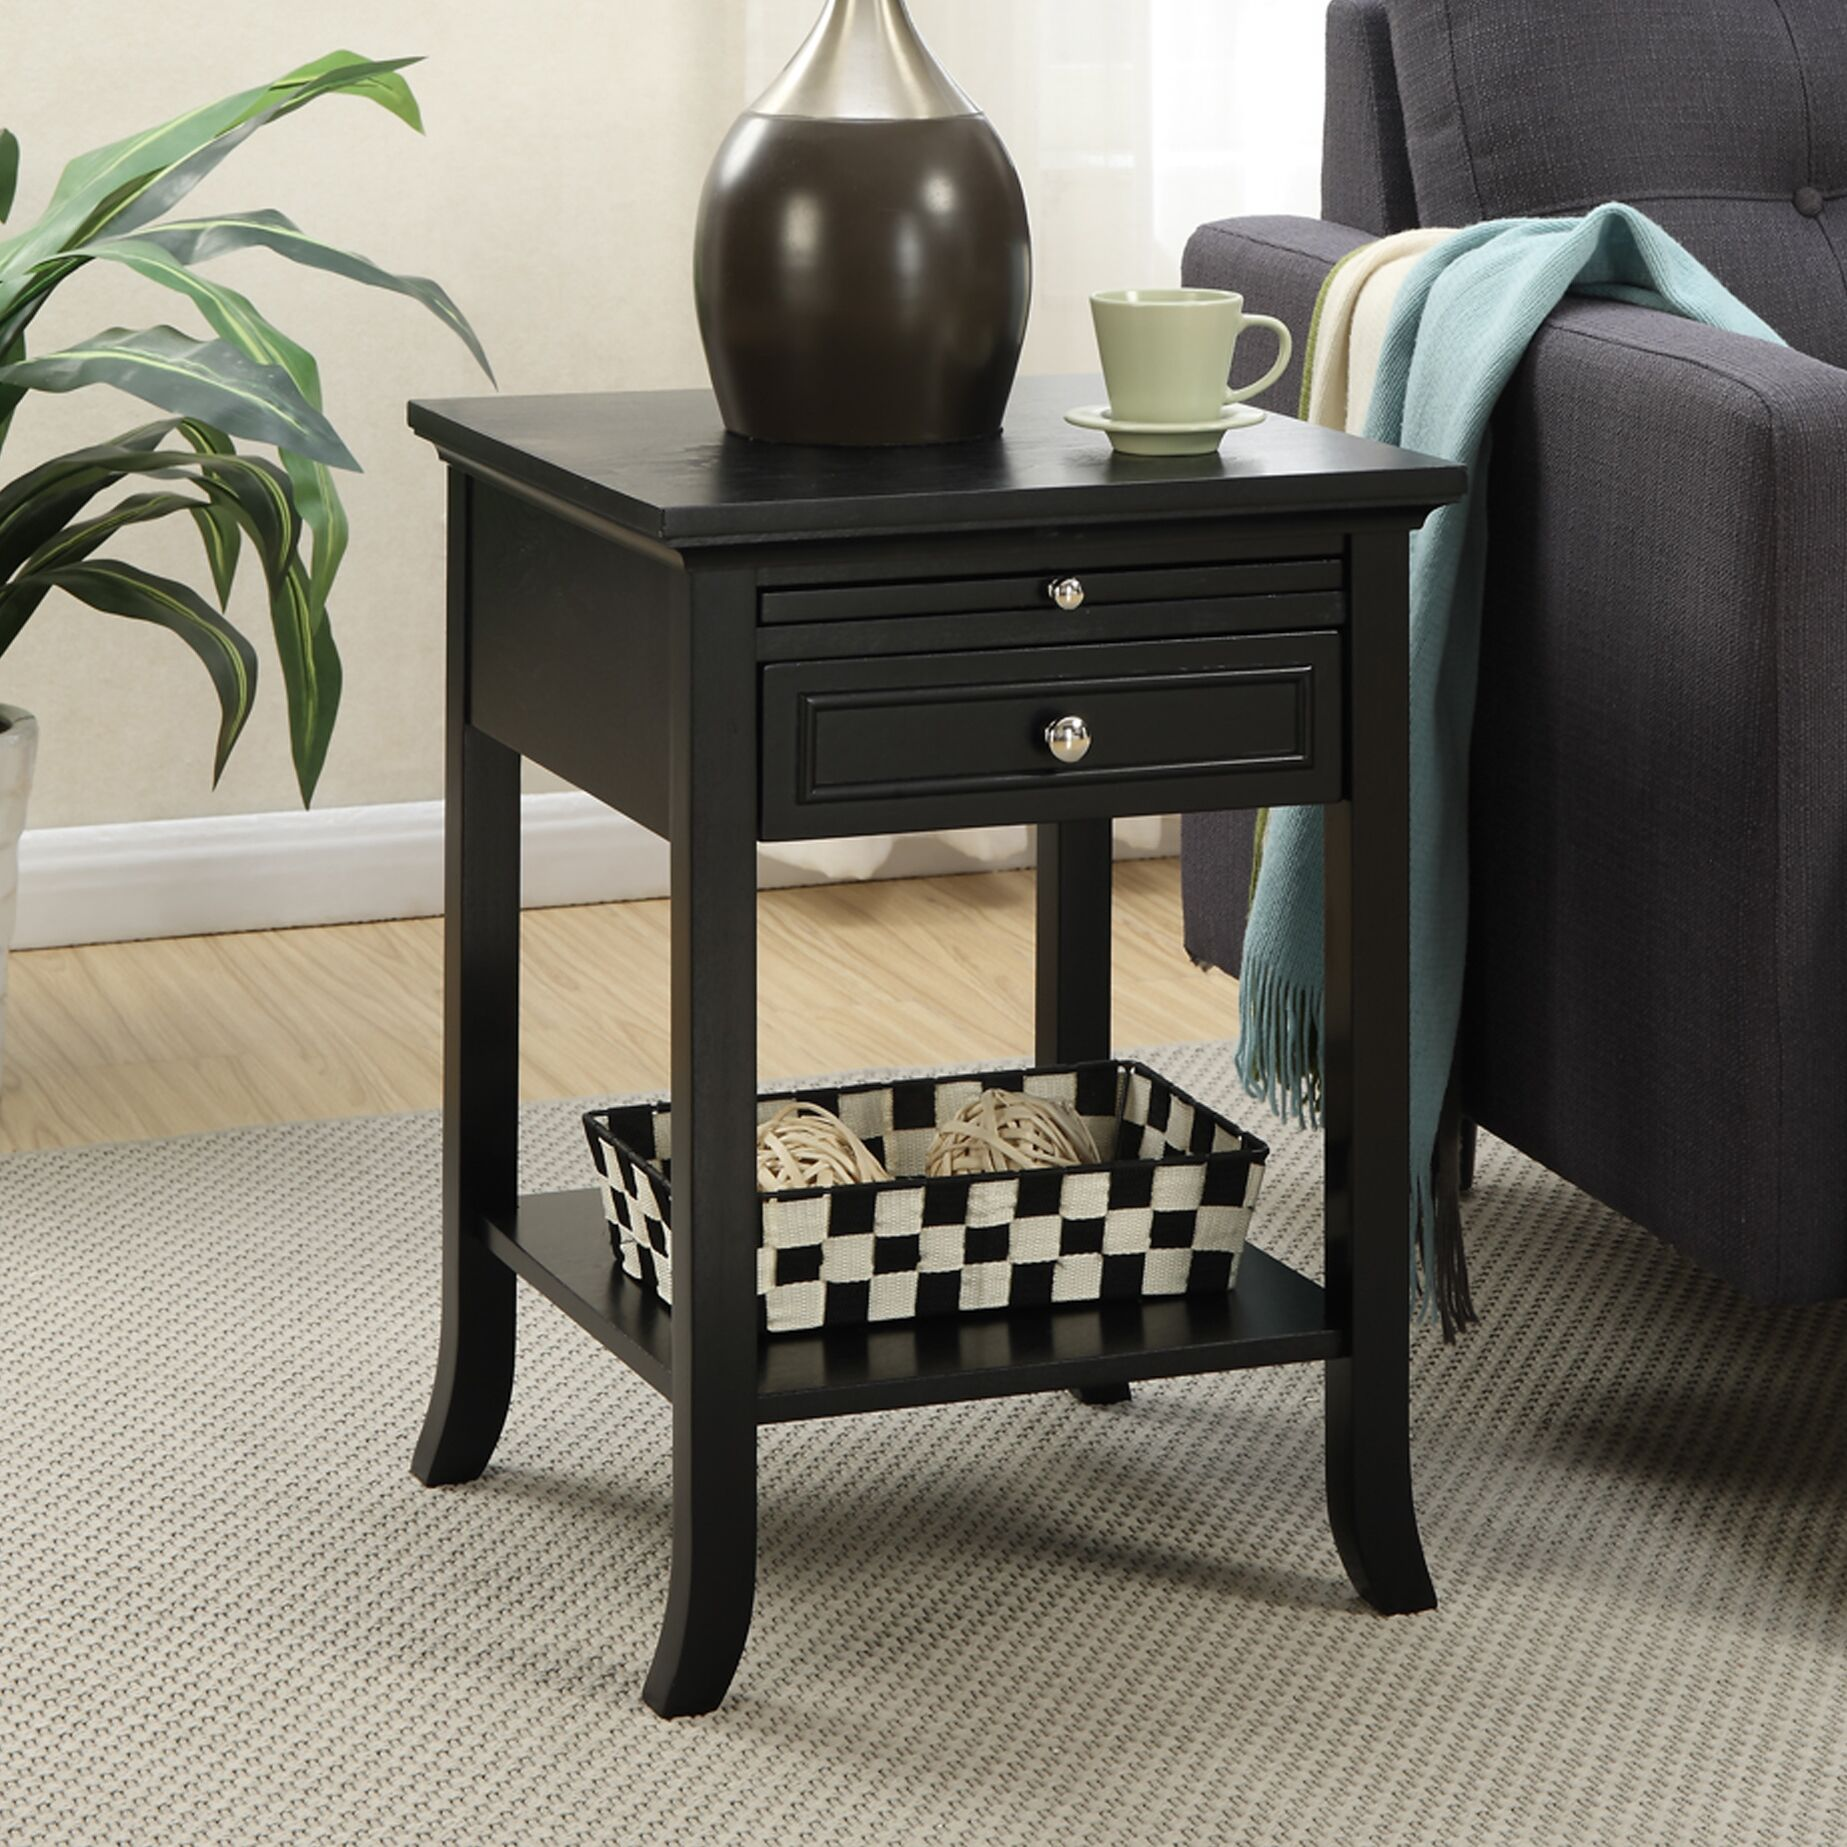 End Table With Storage Table Top Color: Cherry, Table Base Color: Cherry